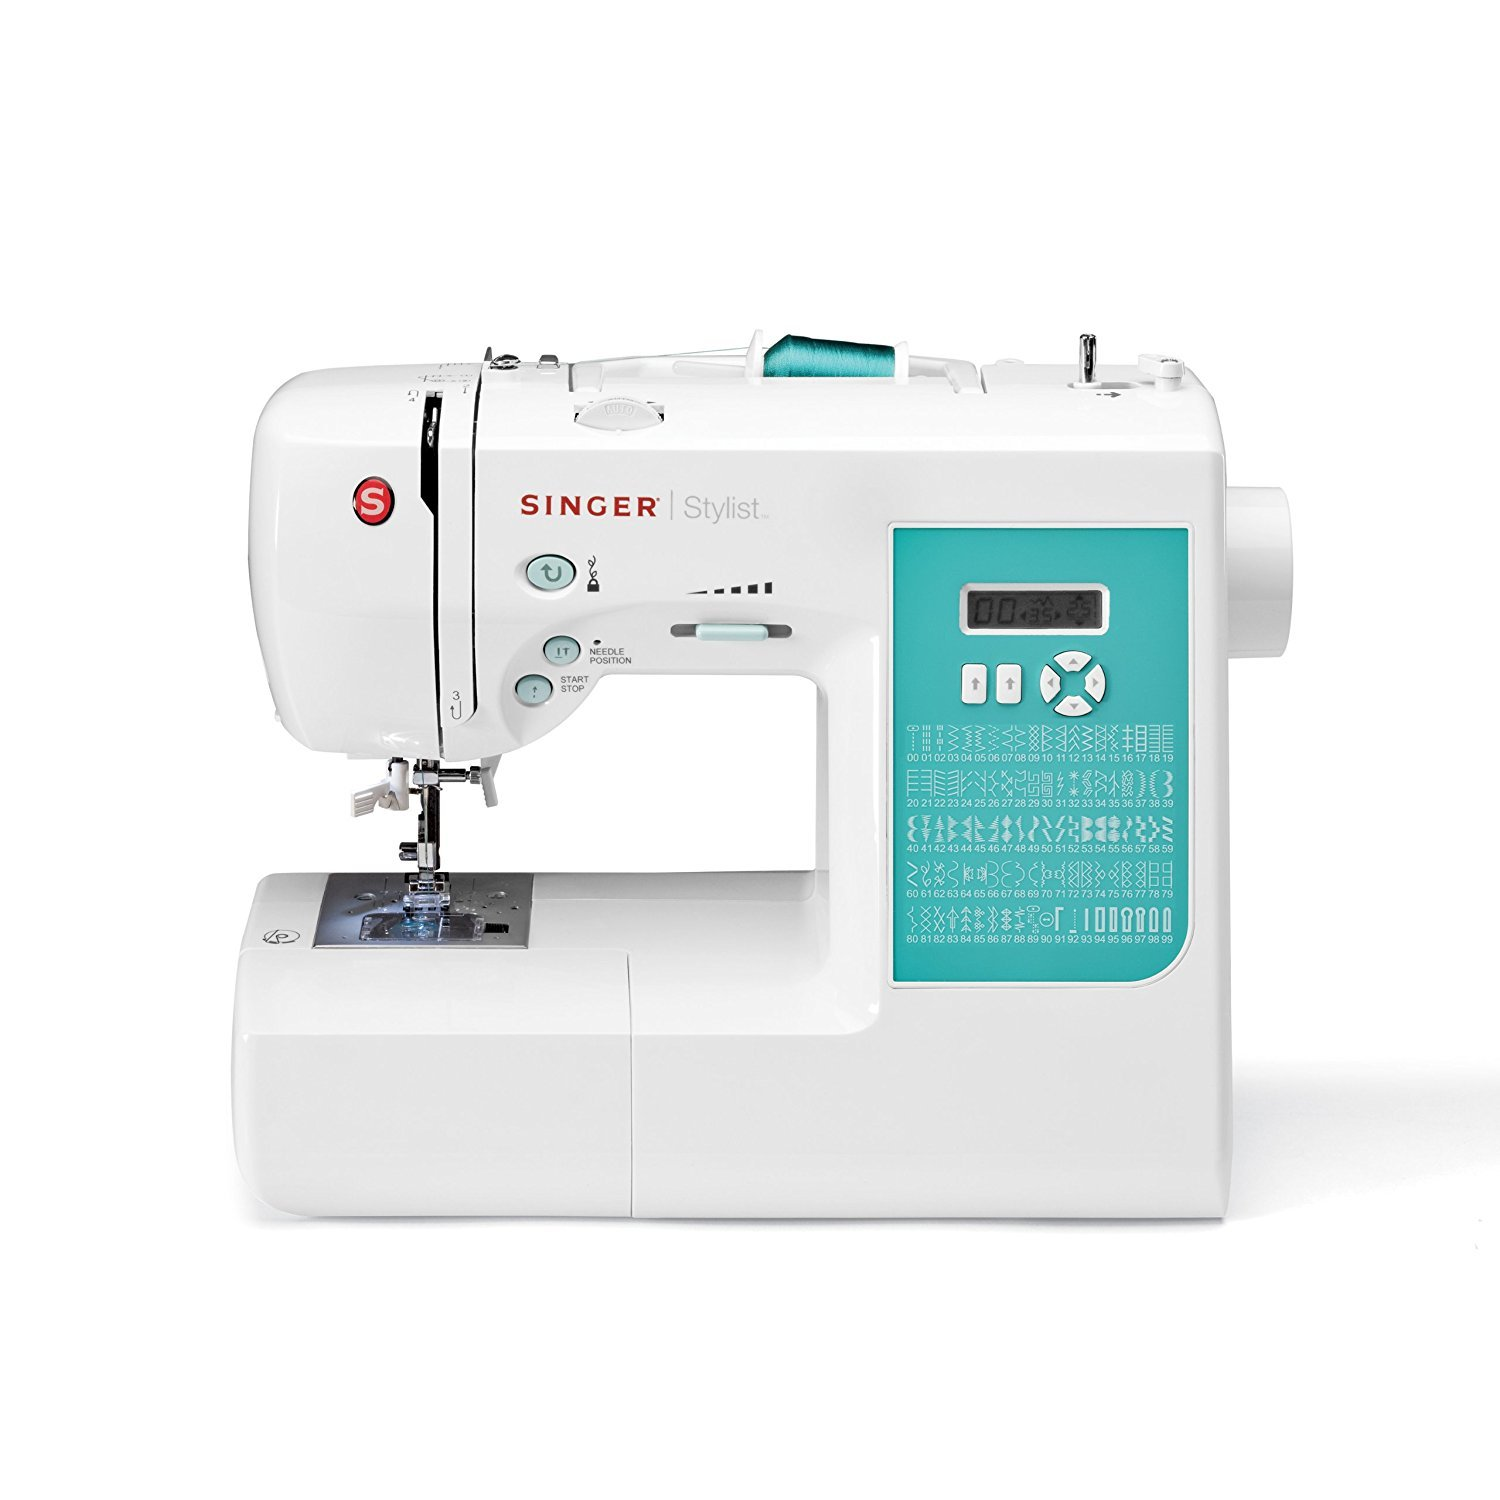 Singer 7258 Stylist Sewing Machine Reviews